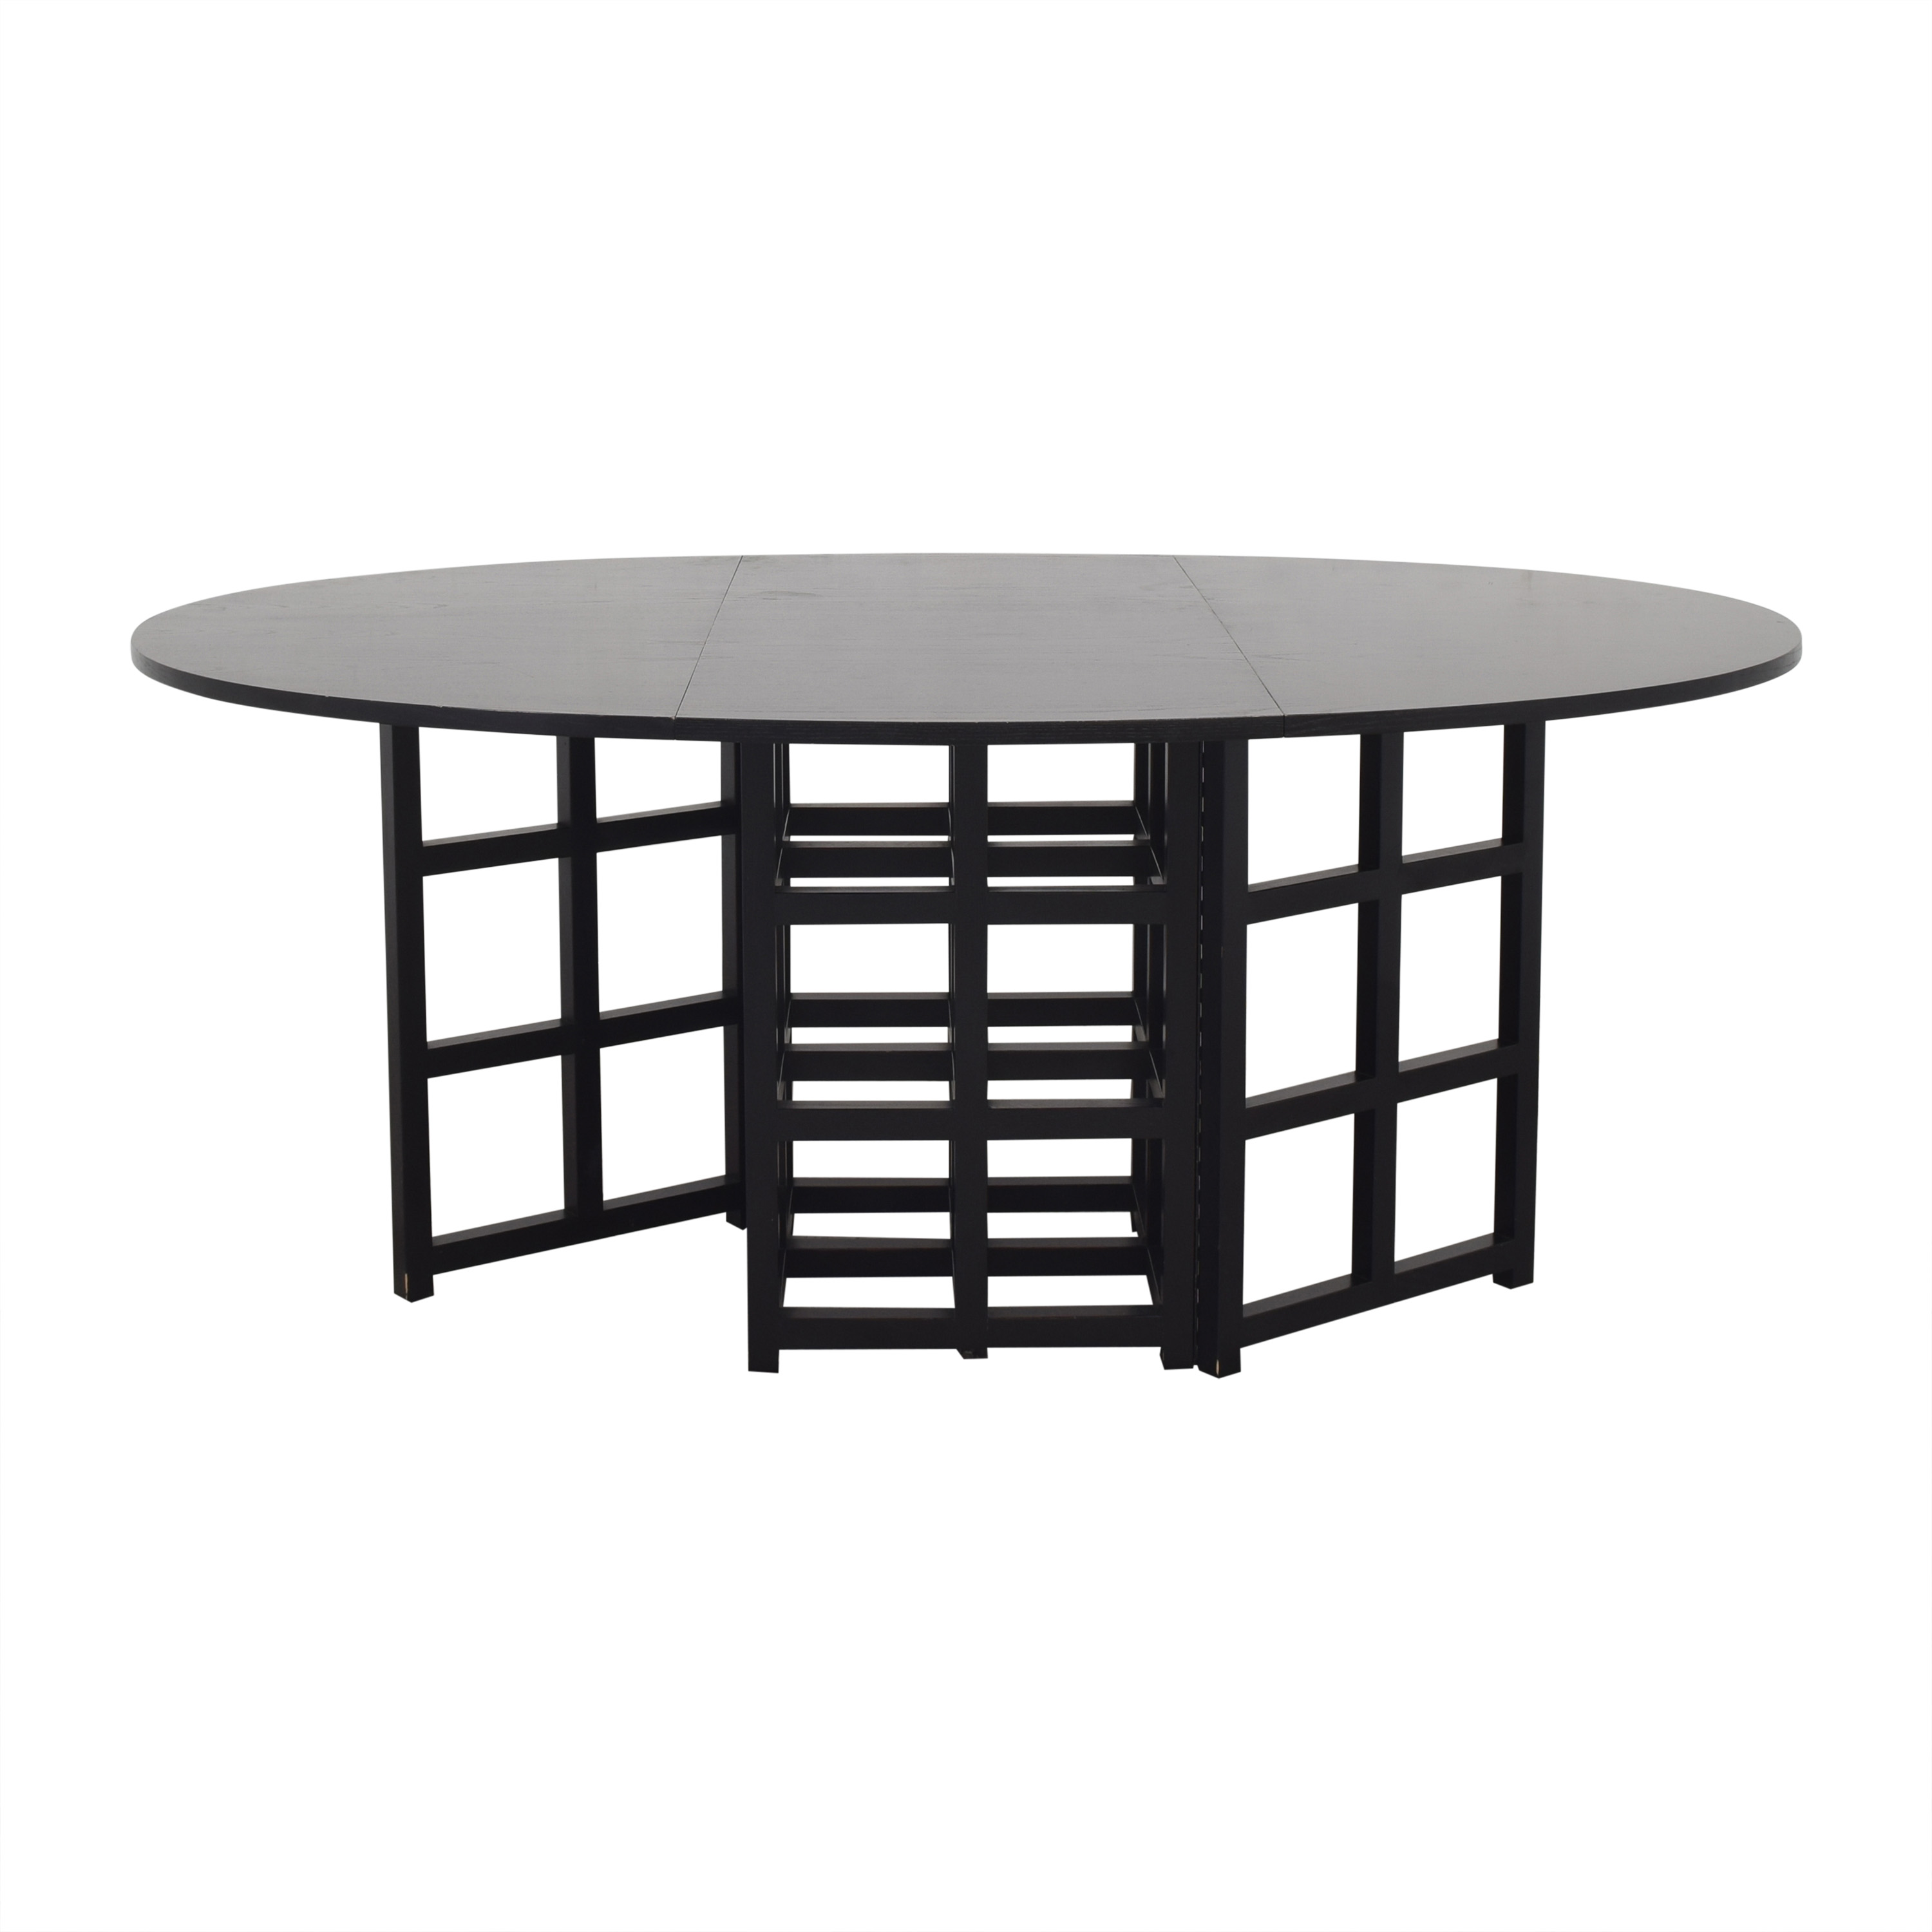 Cassina Cassina Gateleg Dining Table by Charles Rennie Macintosh dimensions